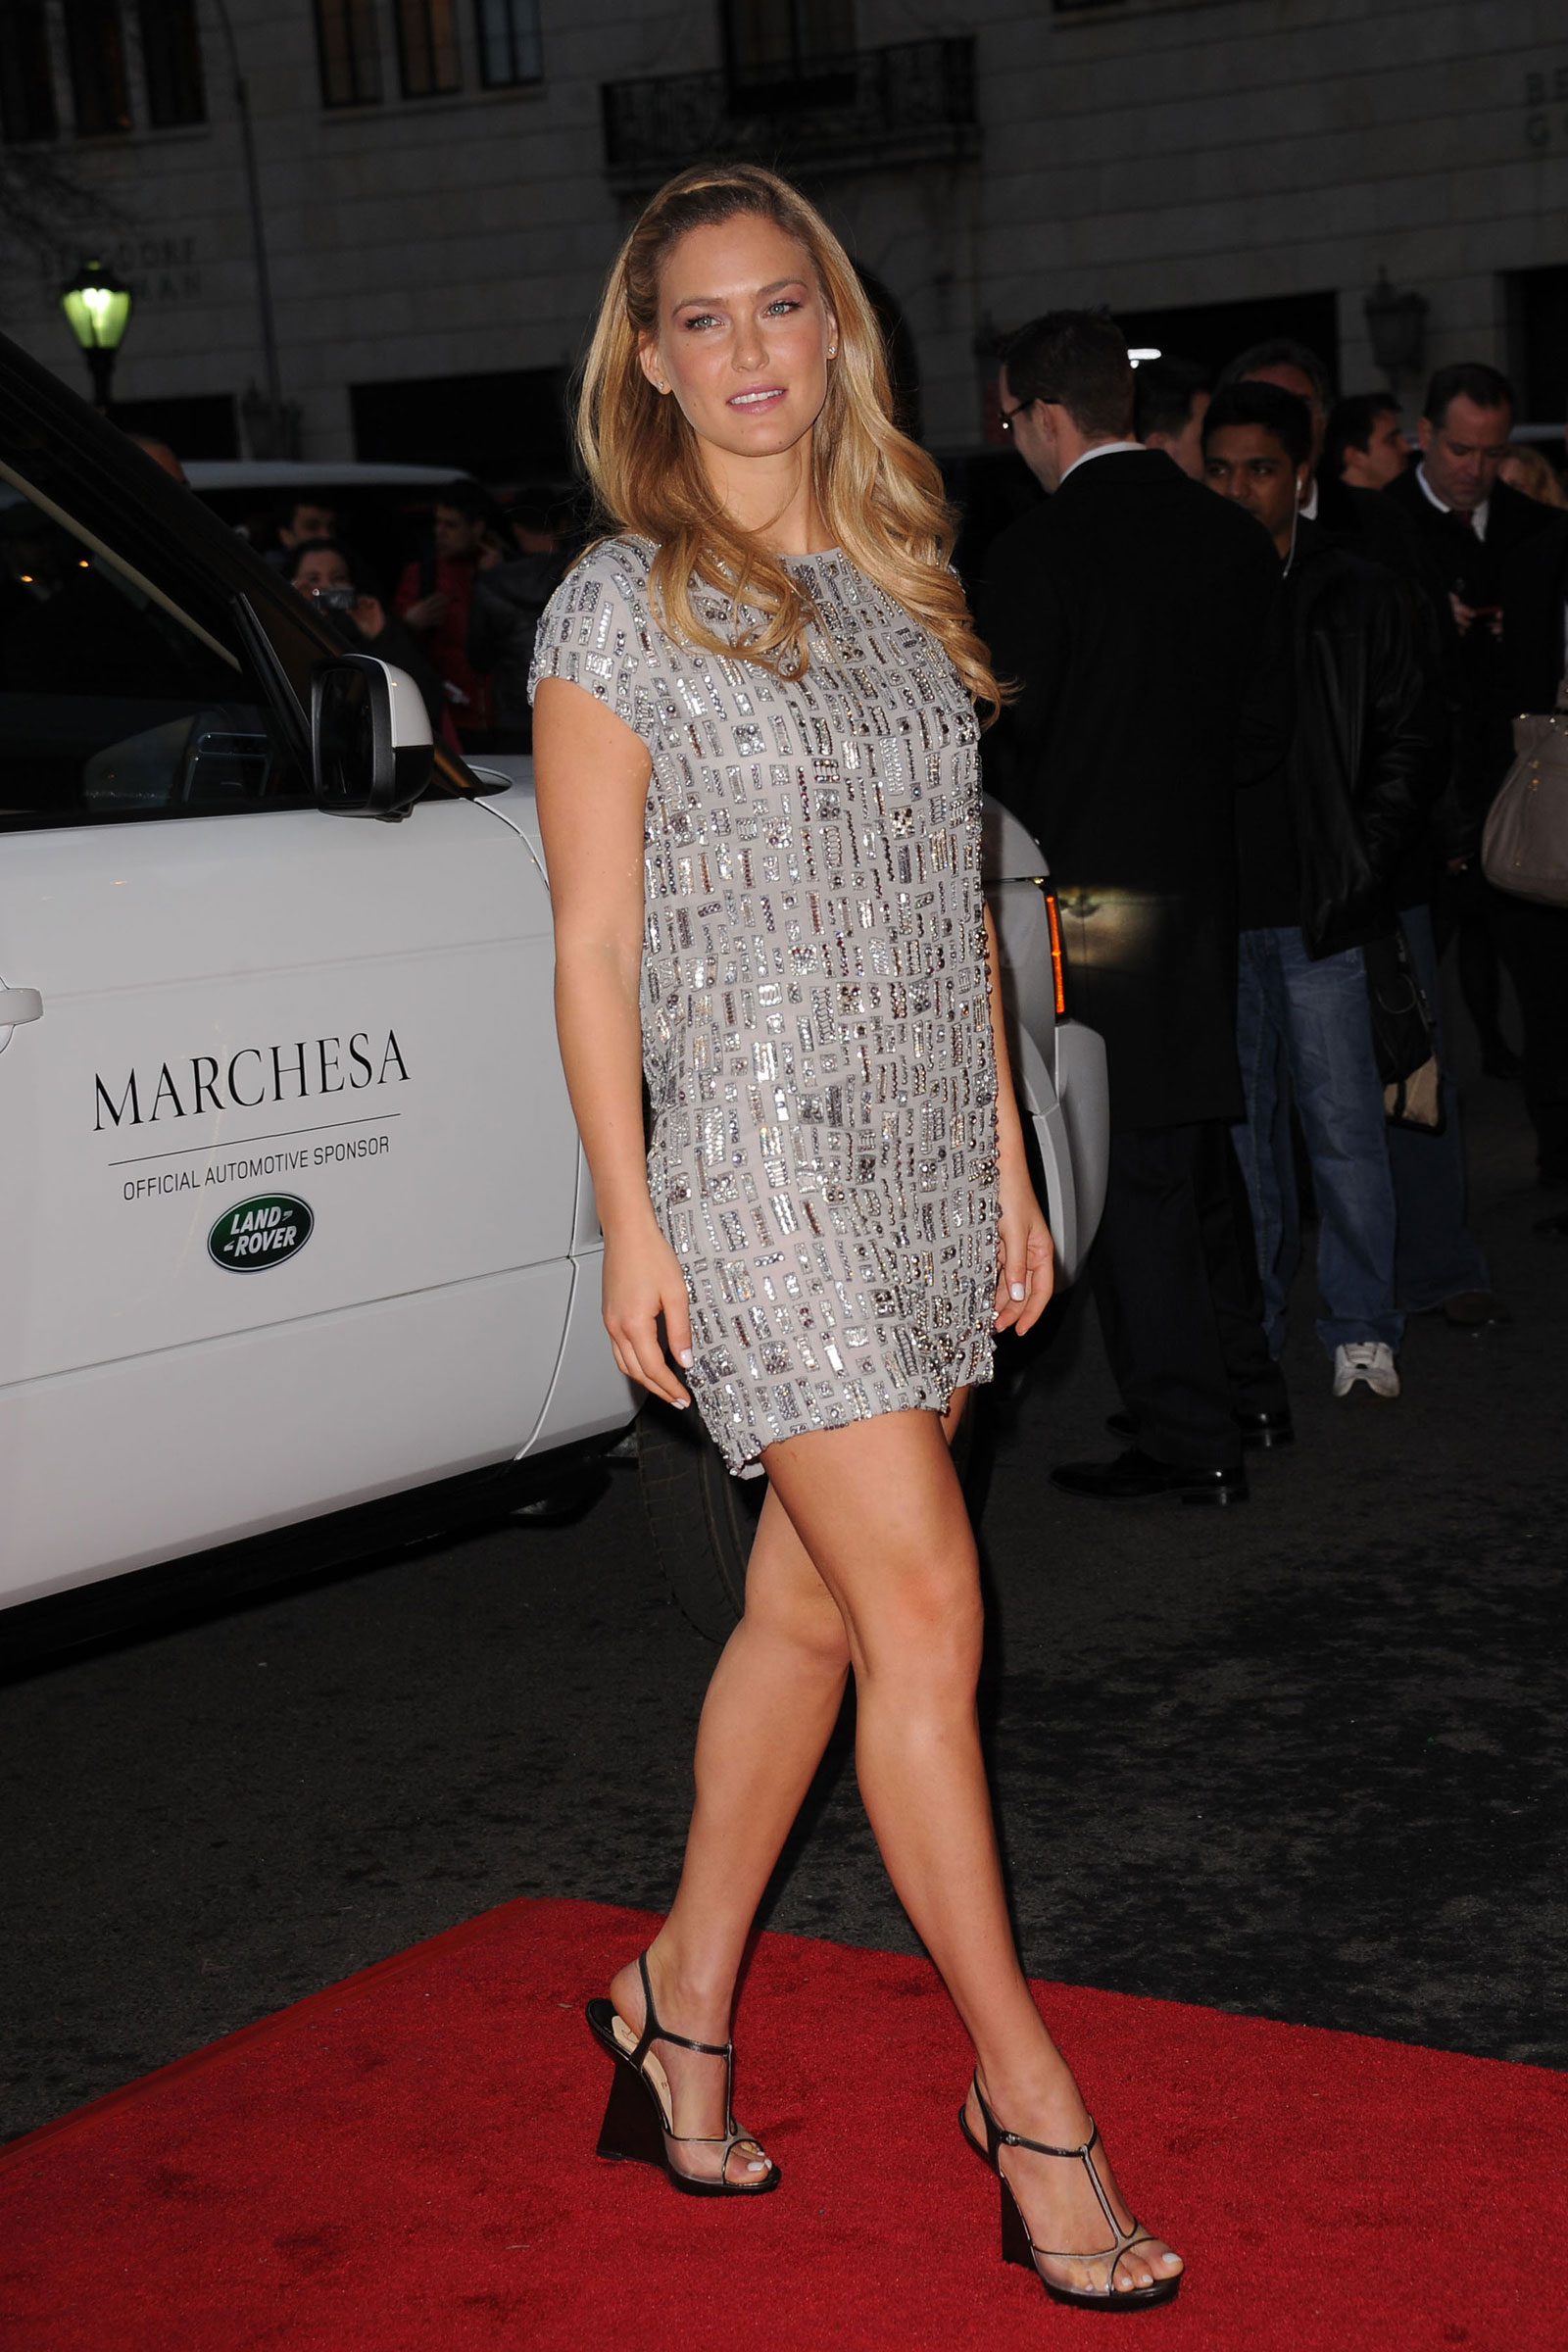 Fashion Of This Week Israeli Hot Girl Bar Refaeli At The Marchesa Fall 2012 Fashion Show In New